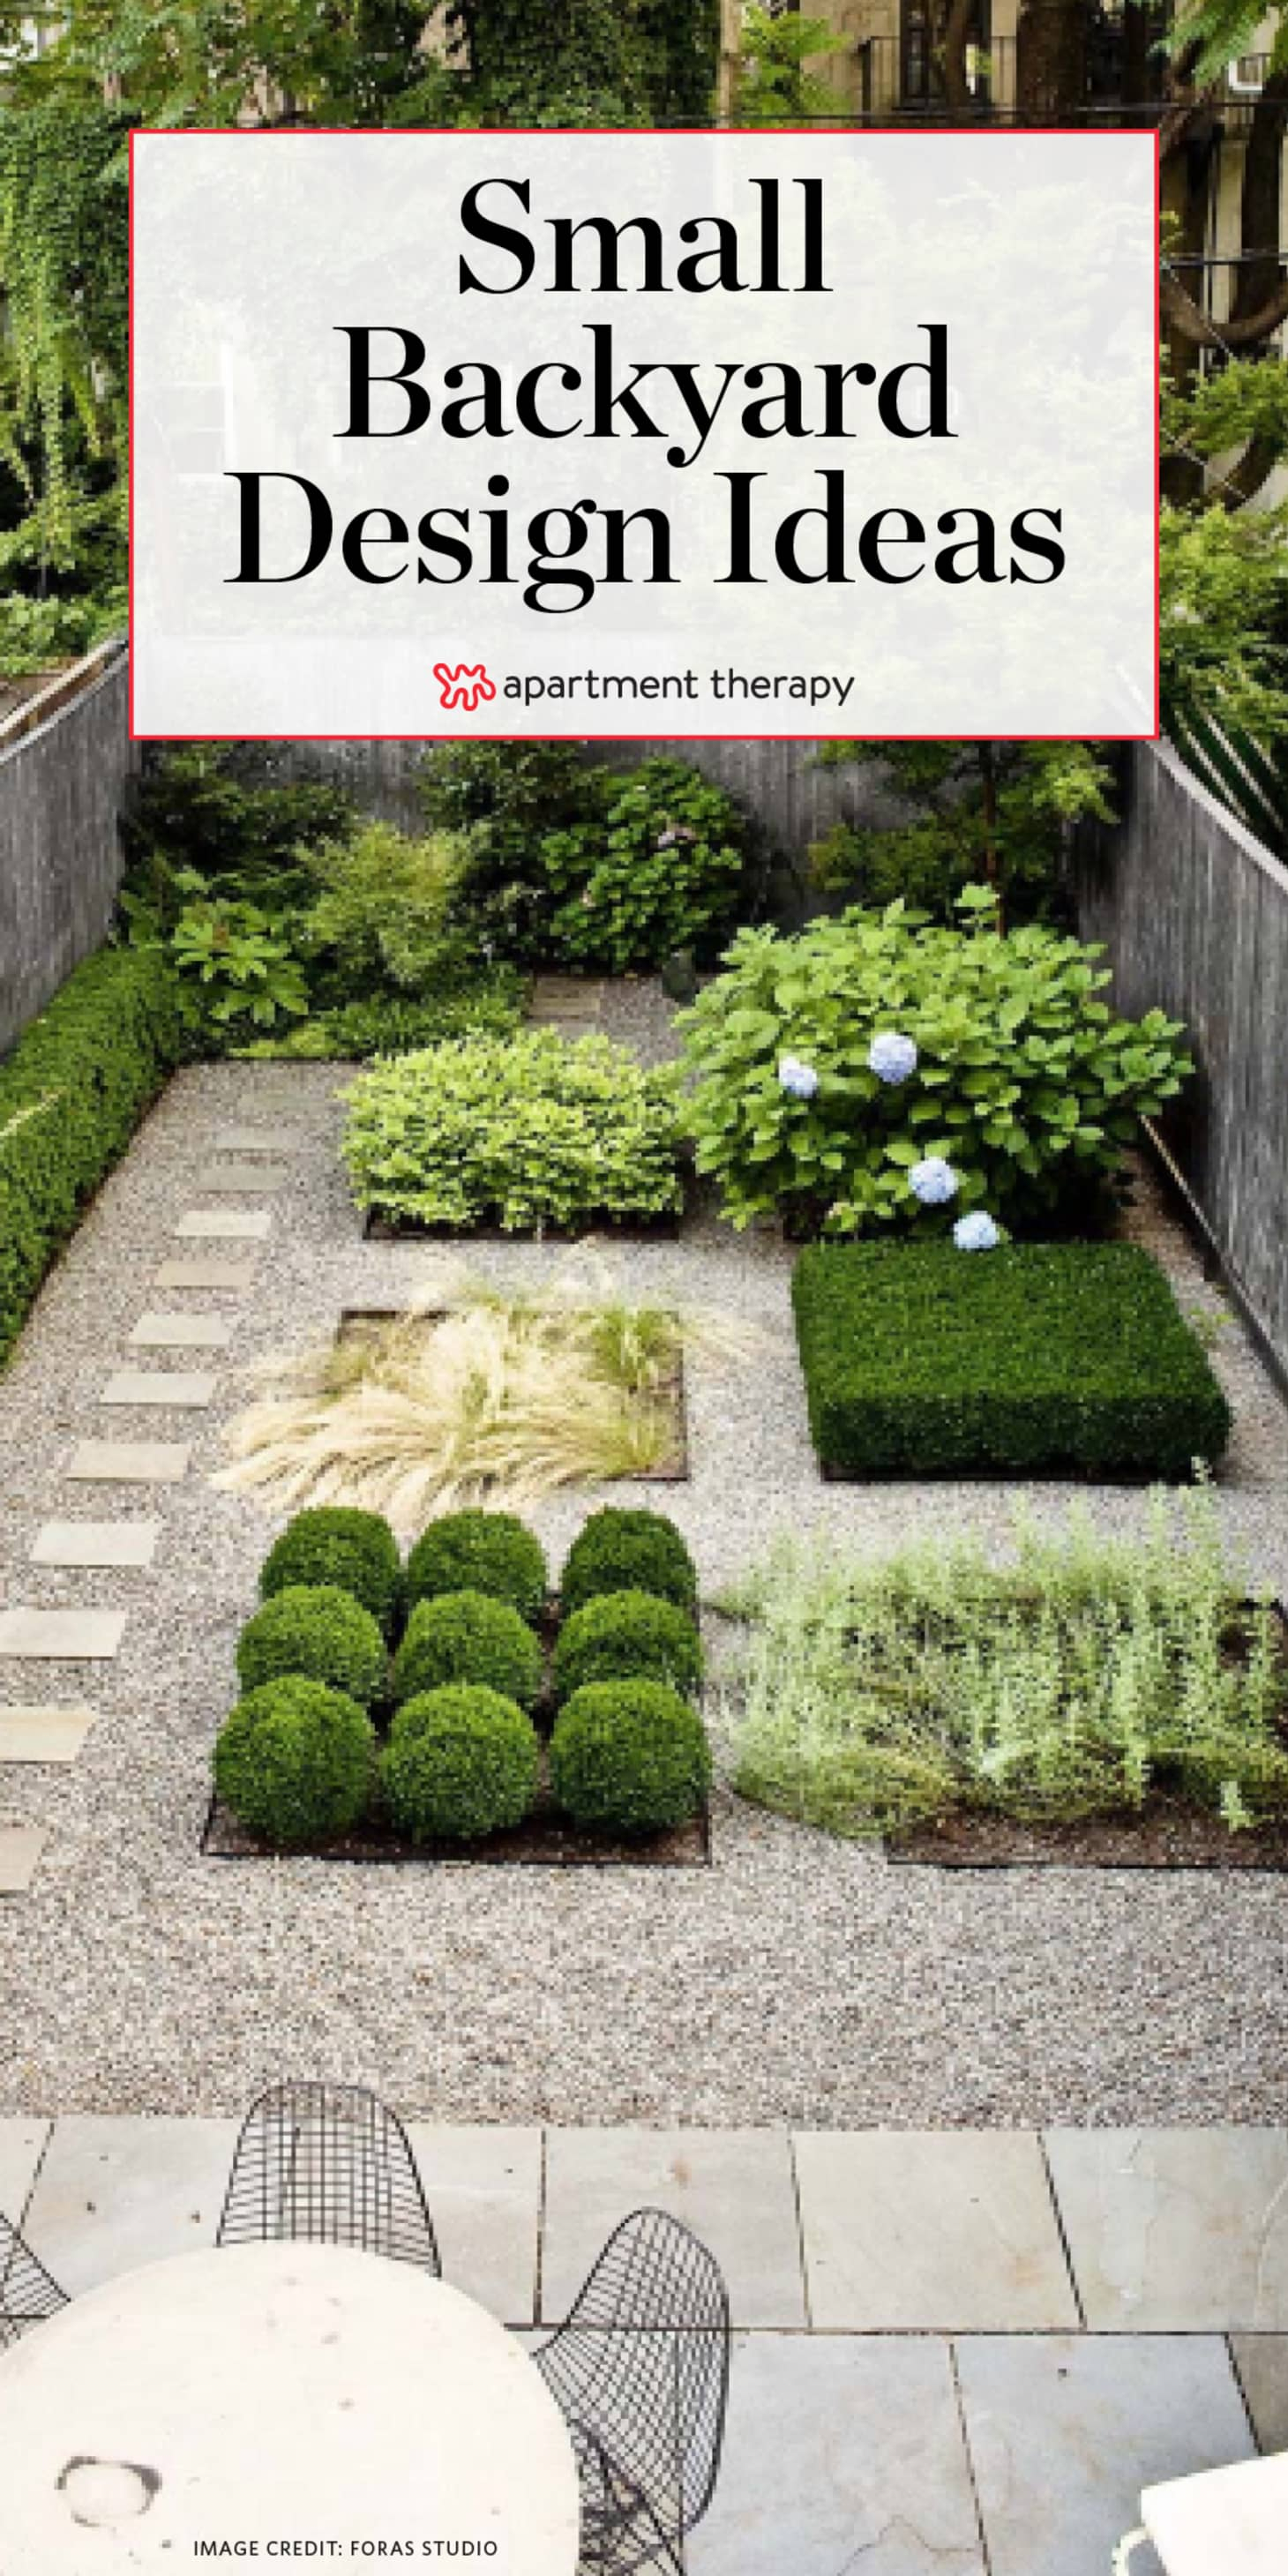 Small Backyard Design Ideas Inspiration Apartment Therapy with Backyard Design Ideas For Small Yards